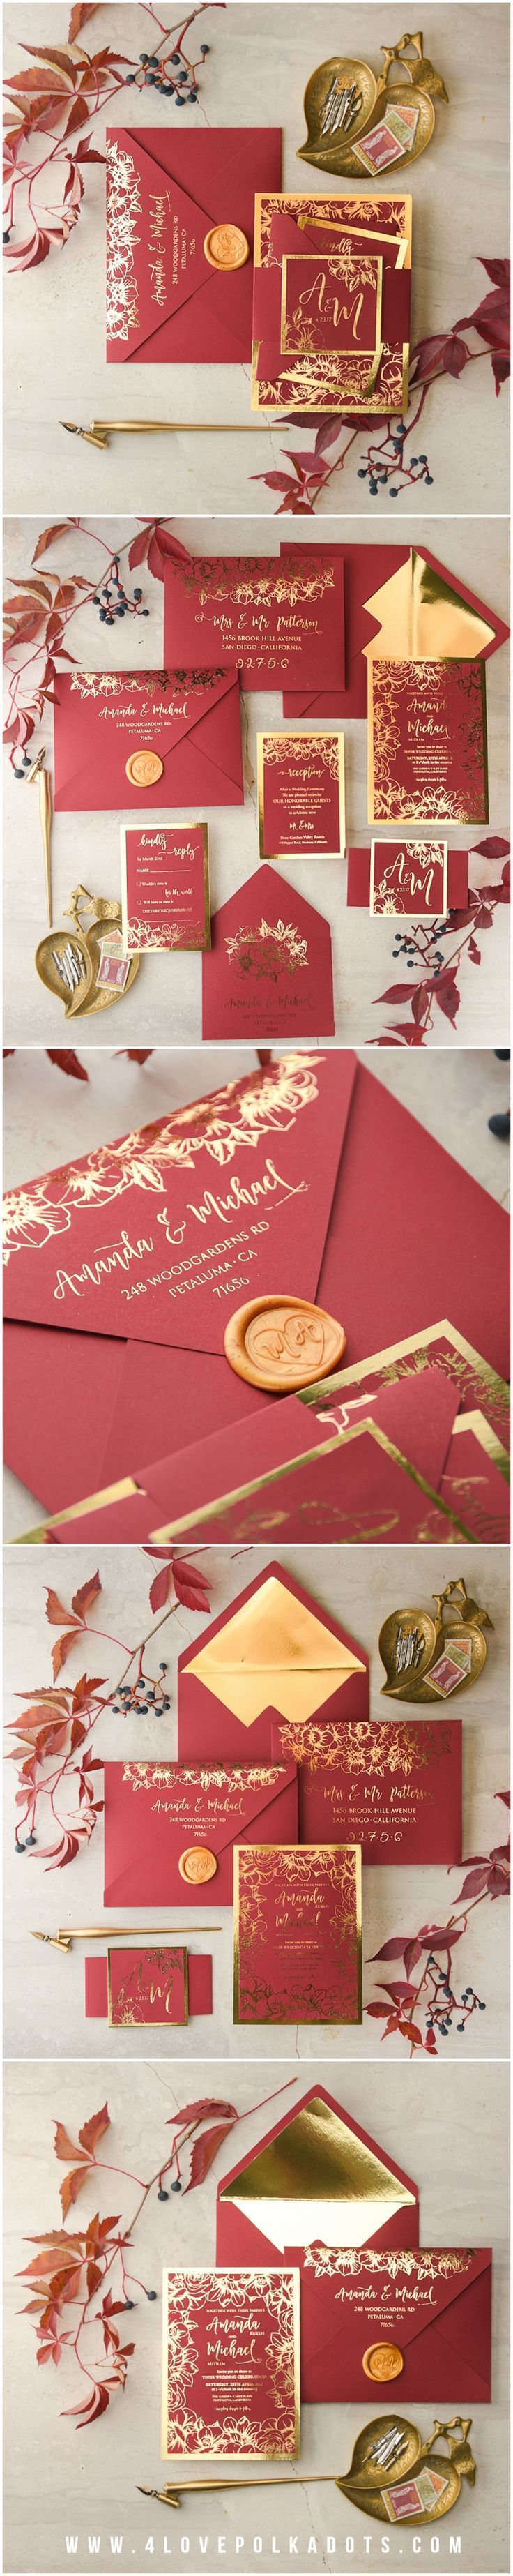 765 best Invitation images on Pinterest | Invitations, Wedding ideas ...